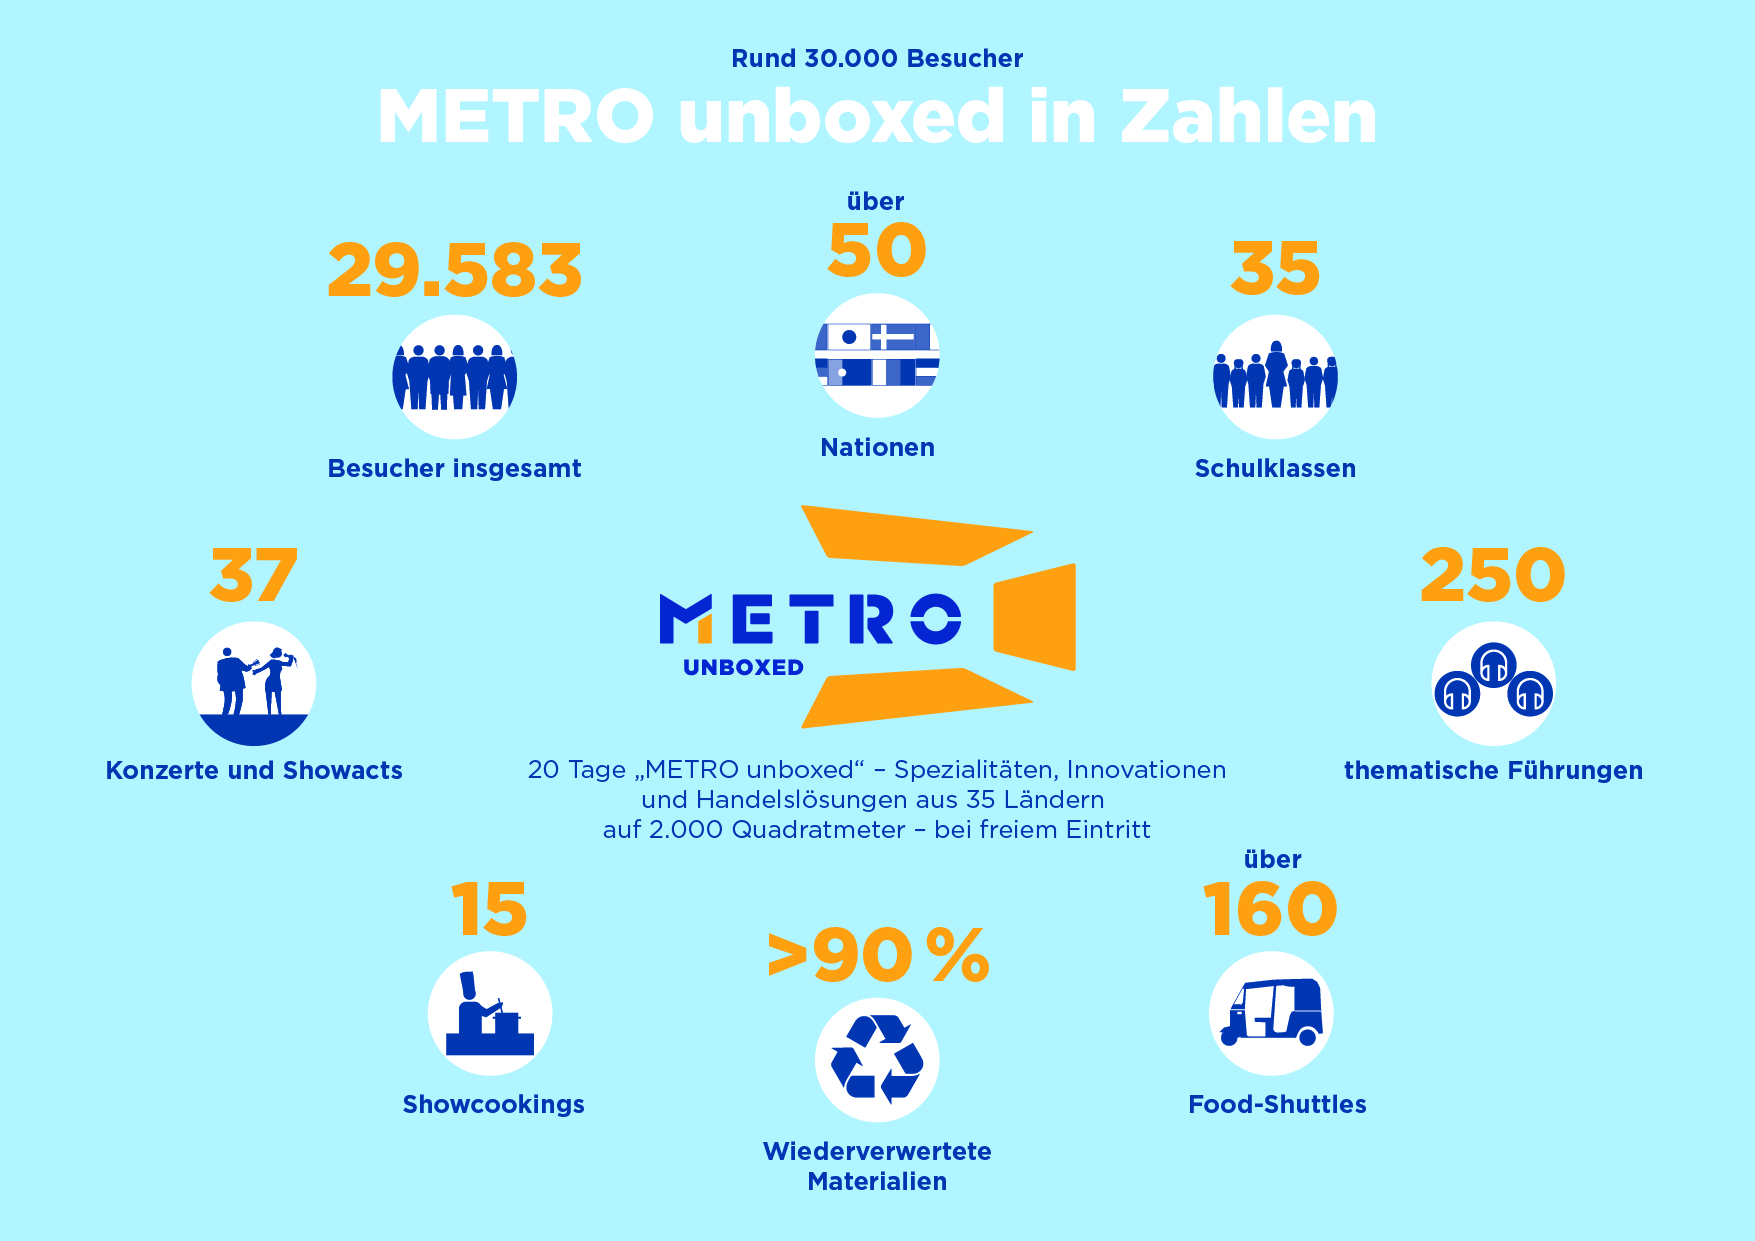 METRO unboxed in Zahlen